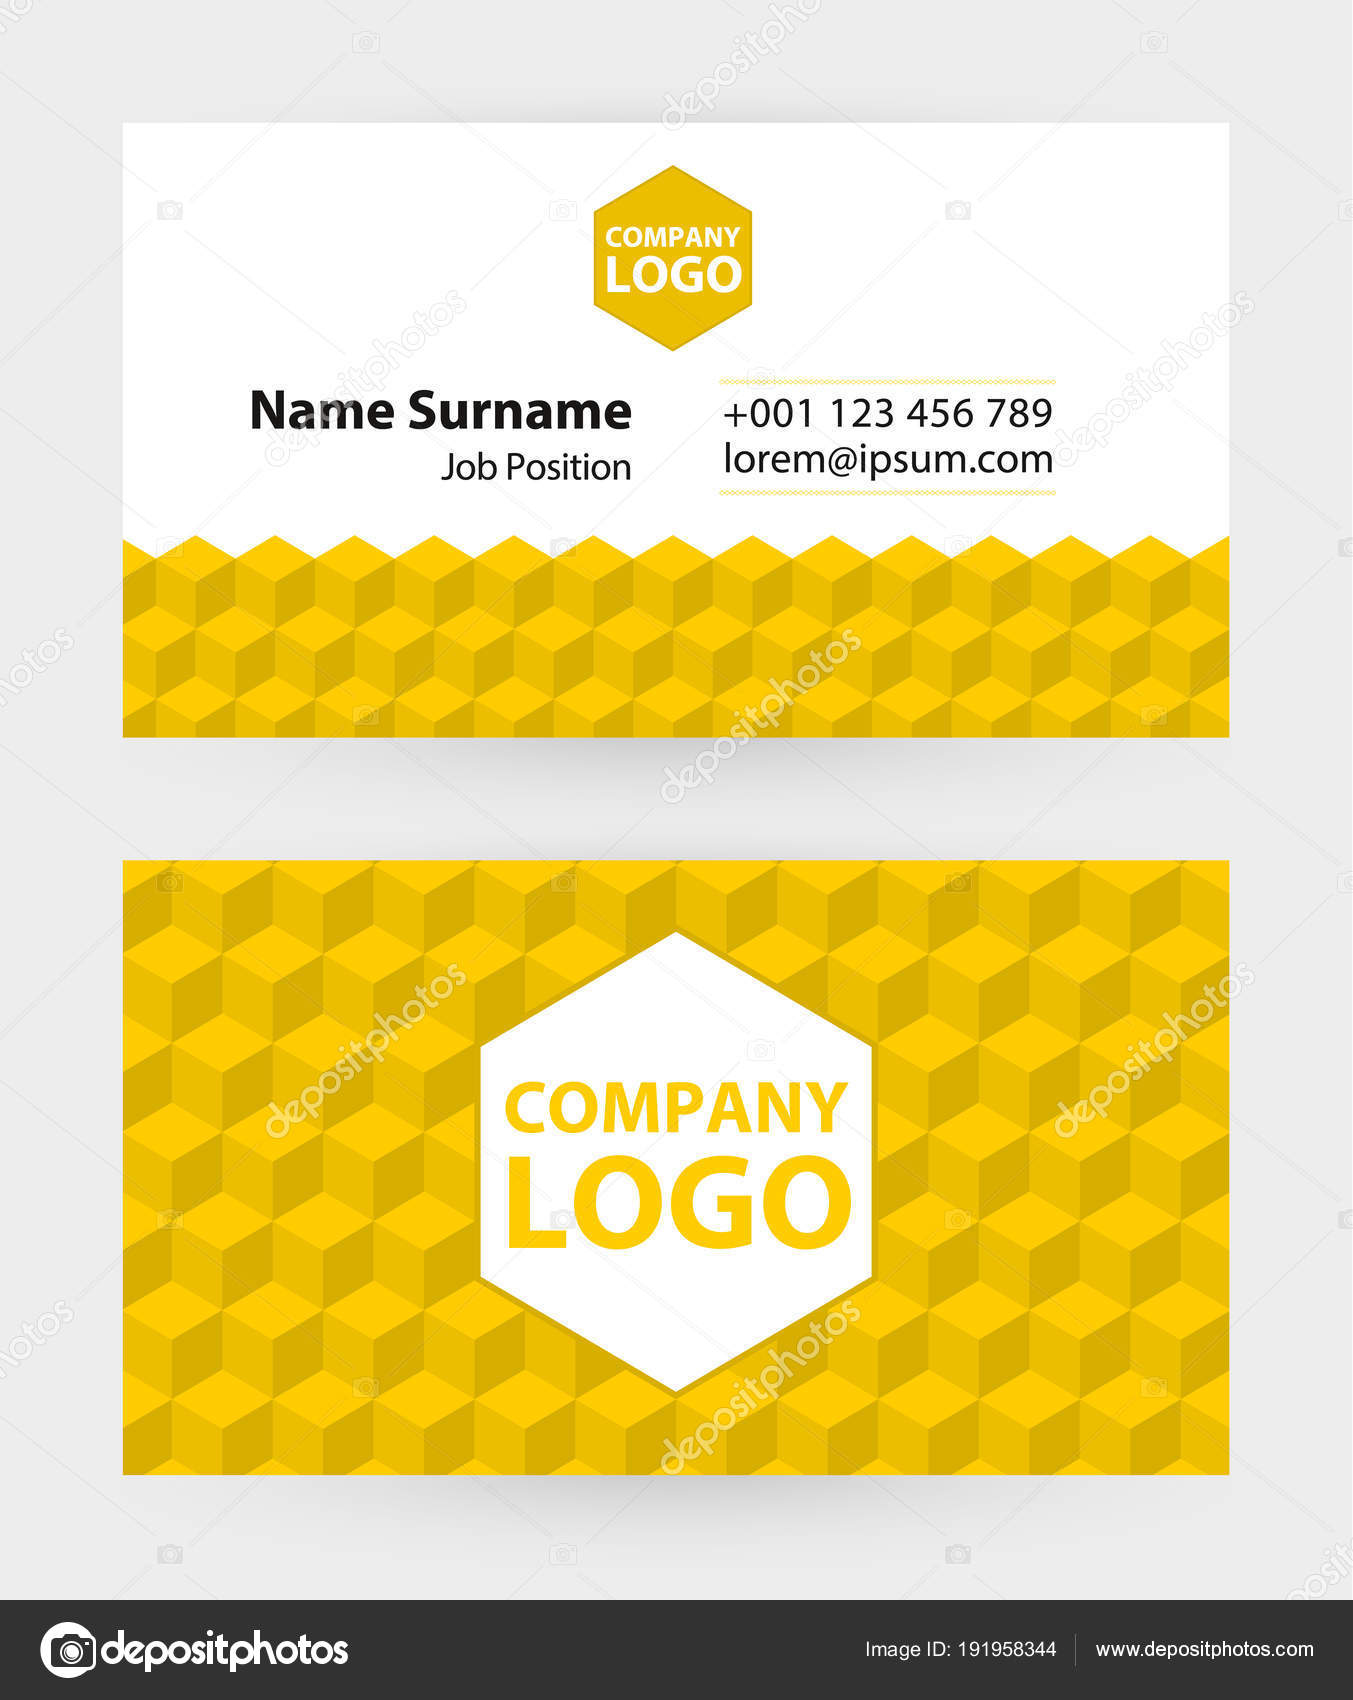 Business card template 9x5 cm size stock vector boldg 191958344 business card template 9x5 cm size vector by boldg reheart Image collections